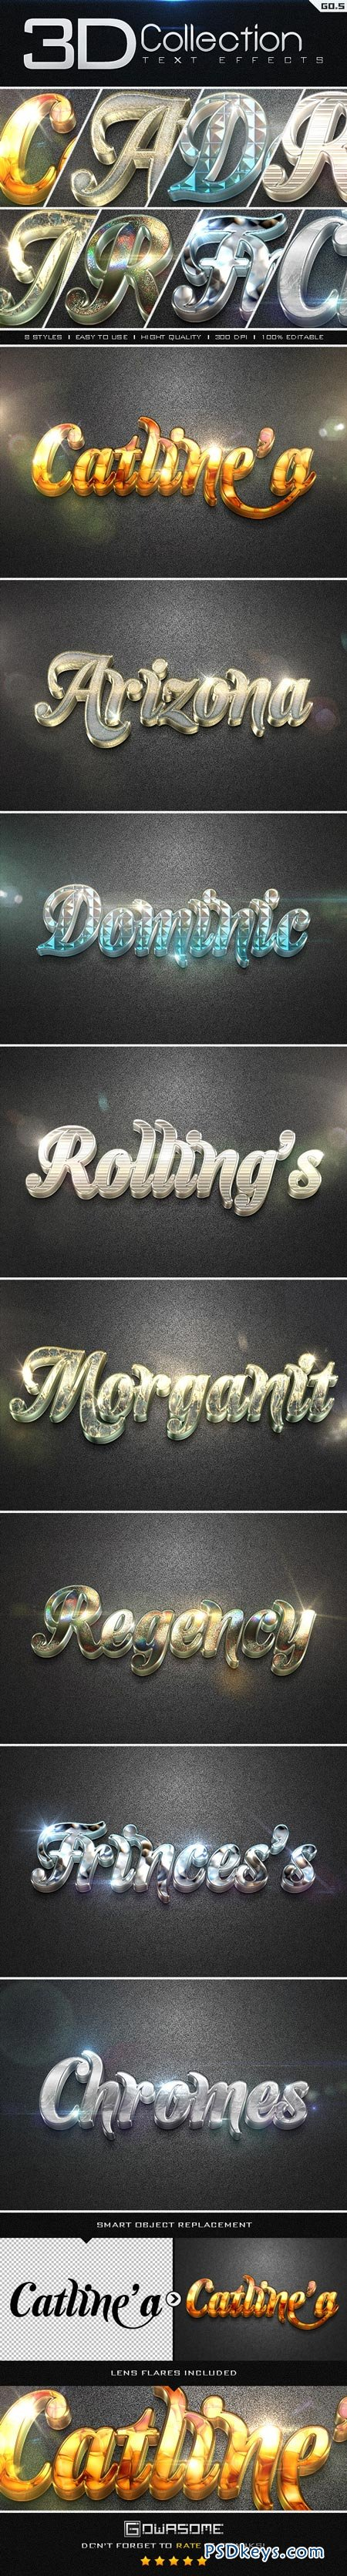 3D Collection Text Effects GO.5 8927121